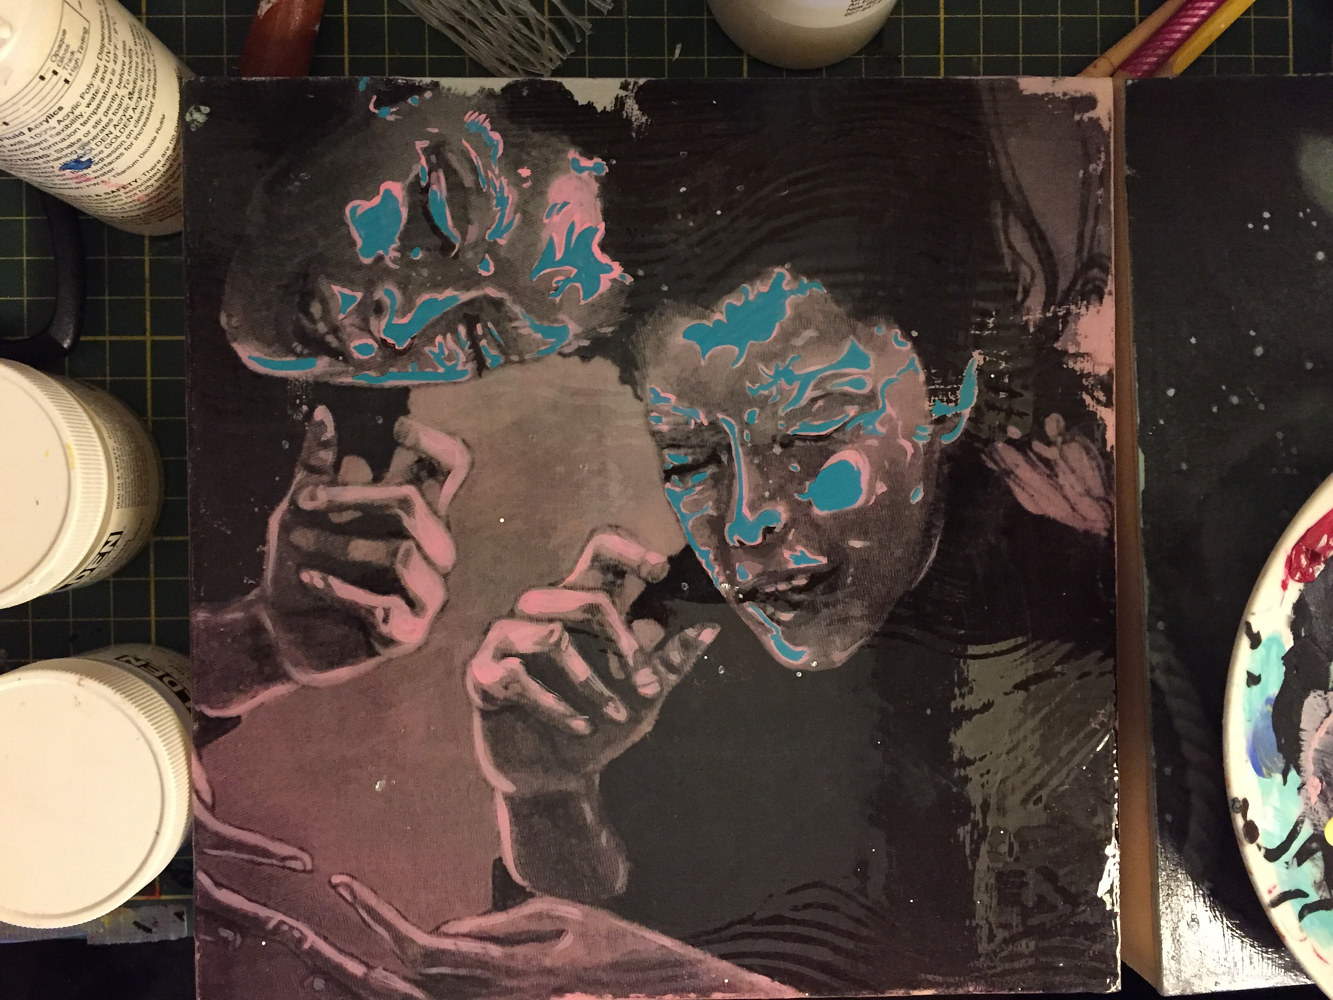 Acrylic painting Bioluminescence in progress by Amber Macgregor